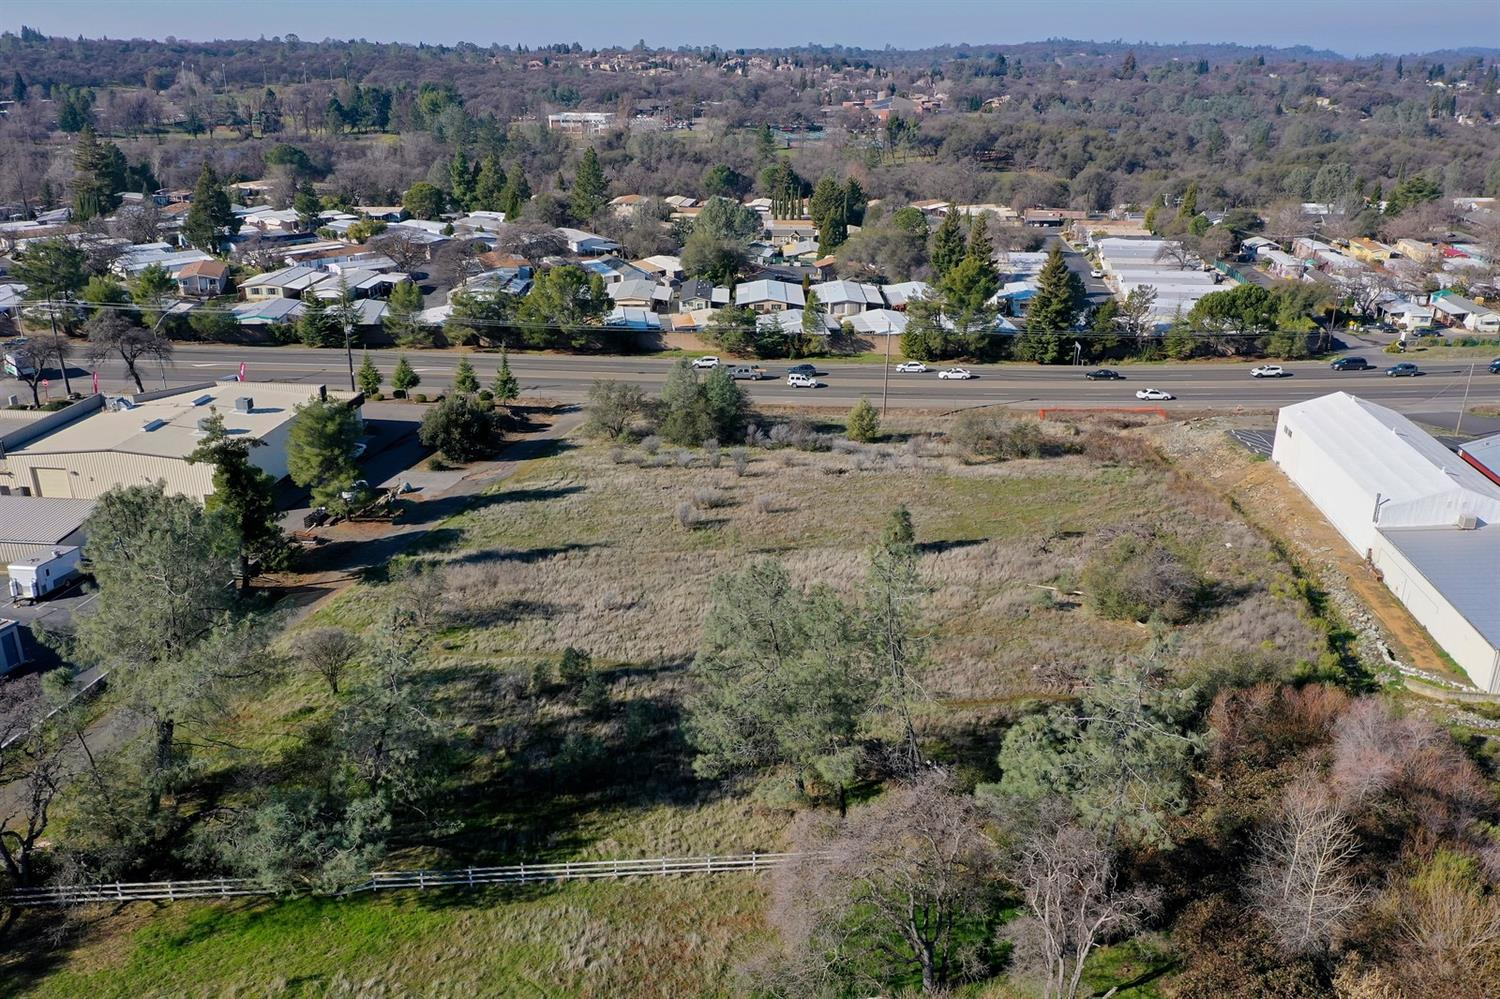 Tremendous opportunity to own commercial acreage with 285 feet of Highway 49 frontage. All 2.8 acres are useable! Capitalize on this unique Auburn property today!  Zoning C3-UP-DC